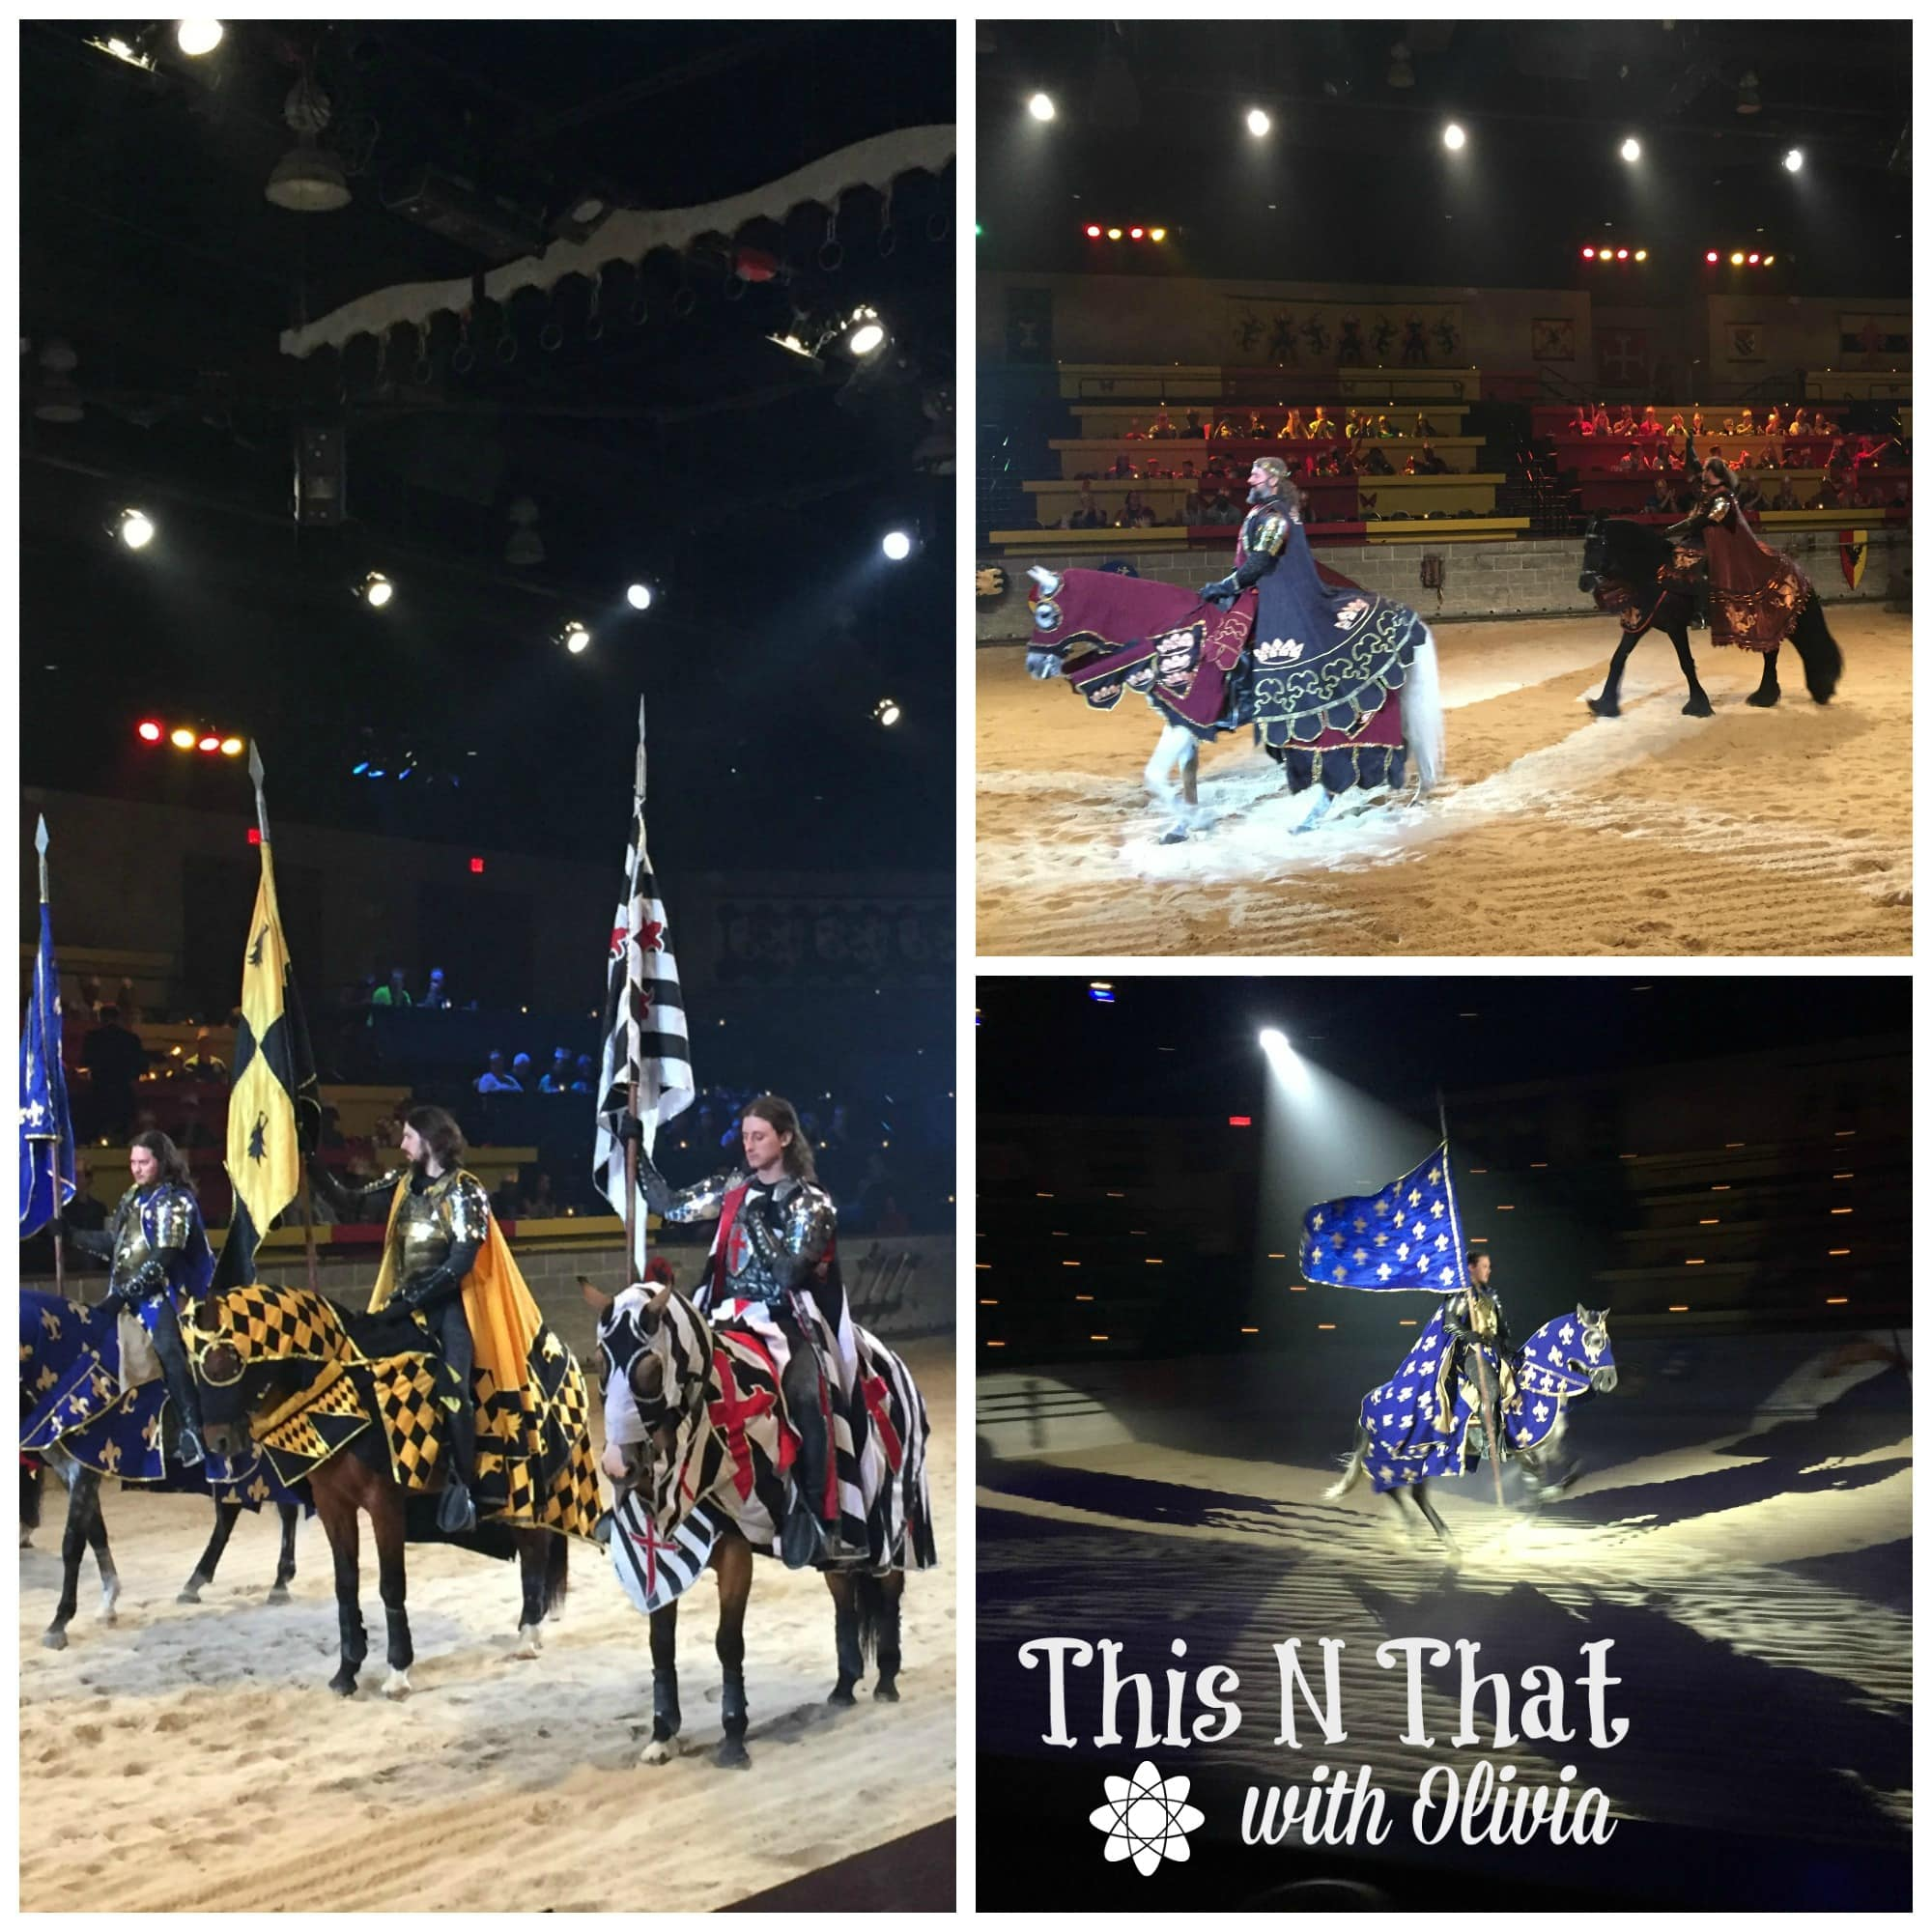 Medieval Times MD Experience   ThisNThatwithOlivia.com